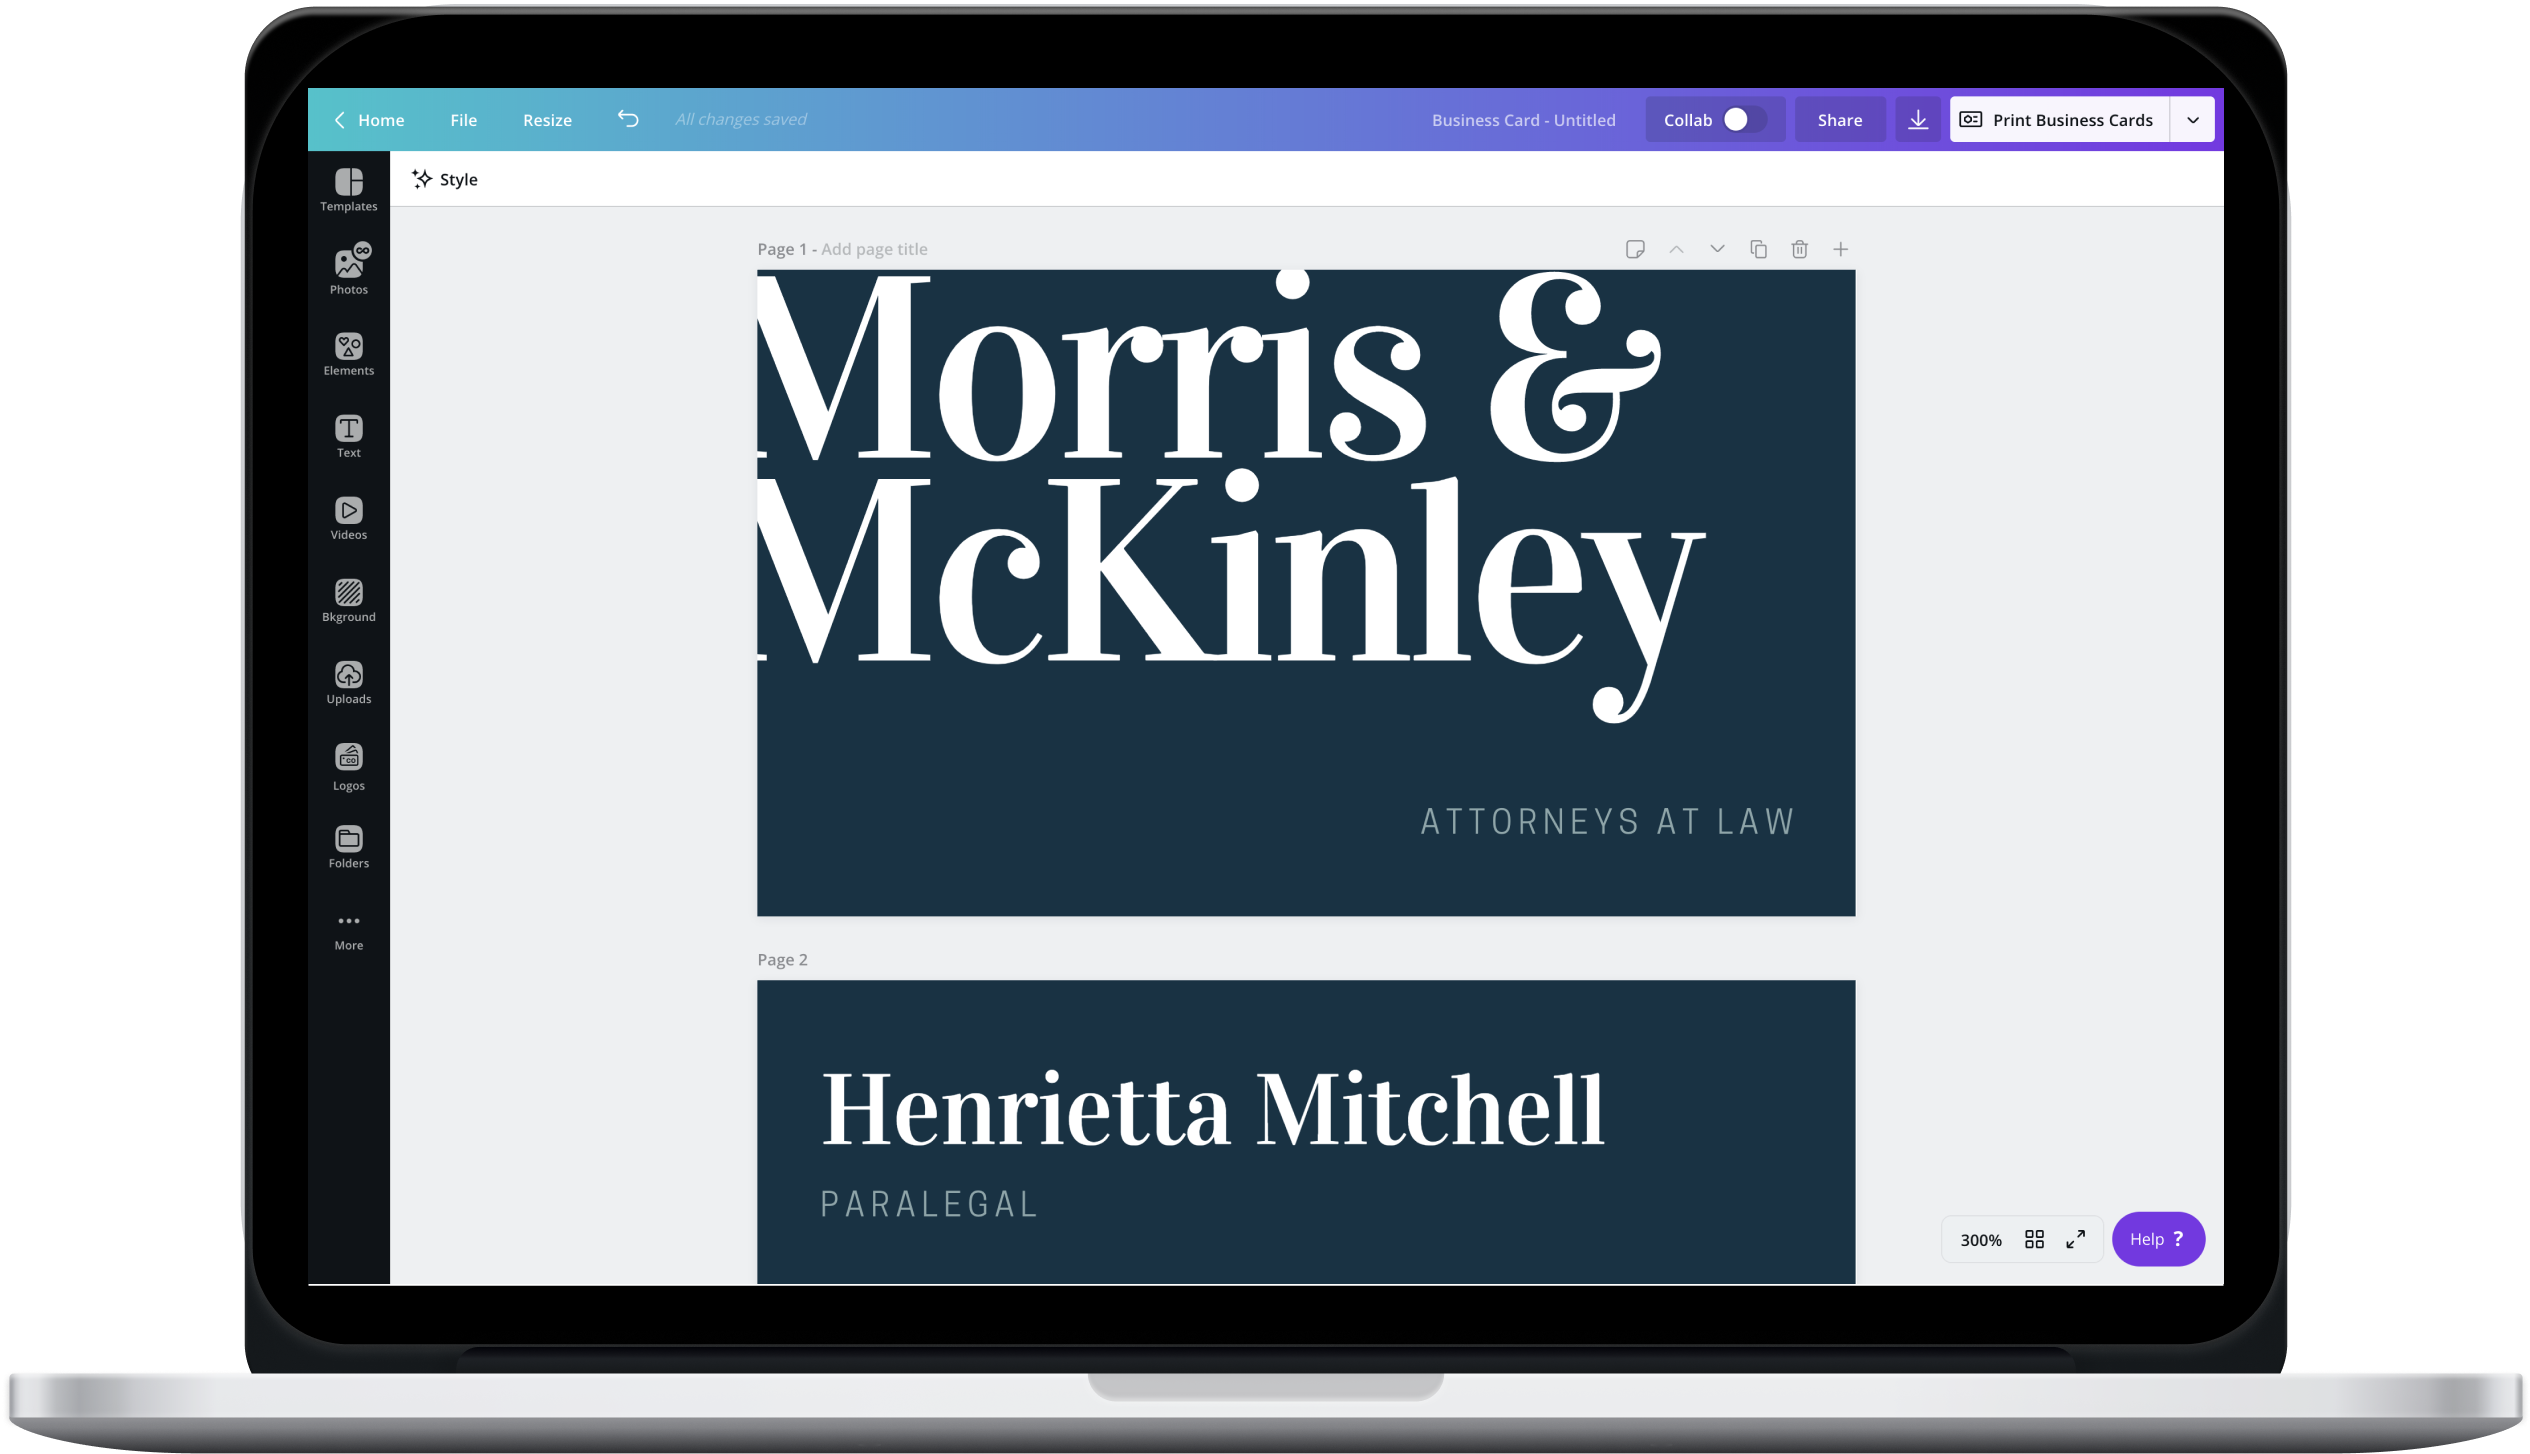 Canva editor showing blue business card design